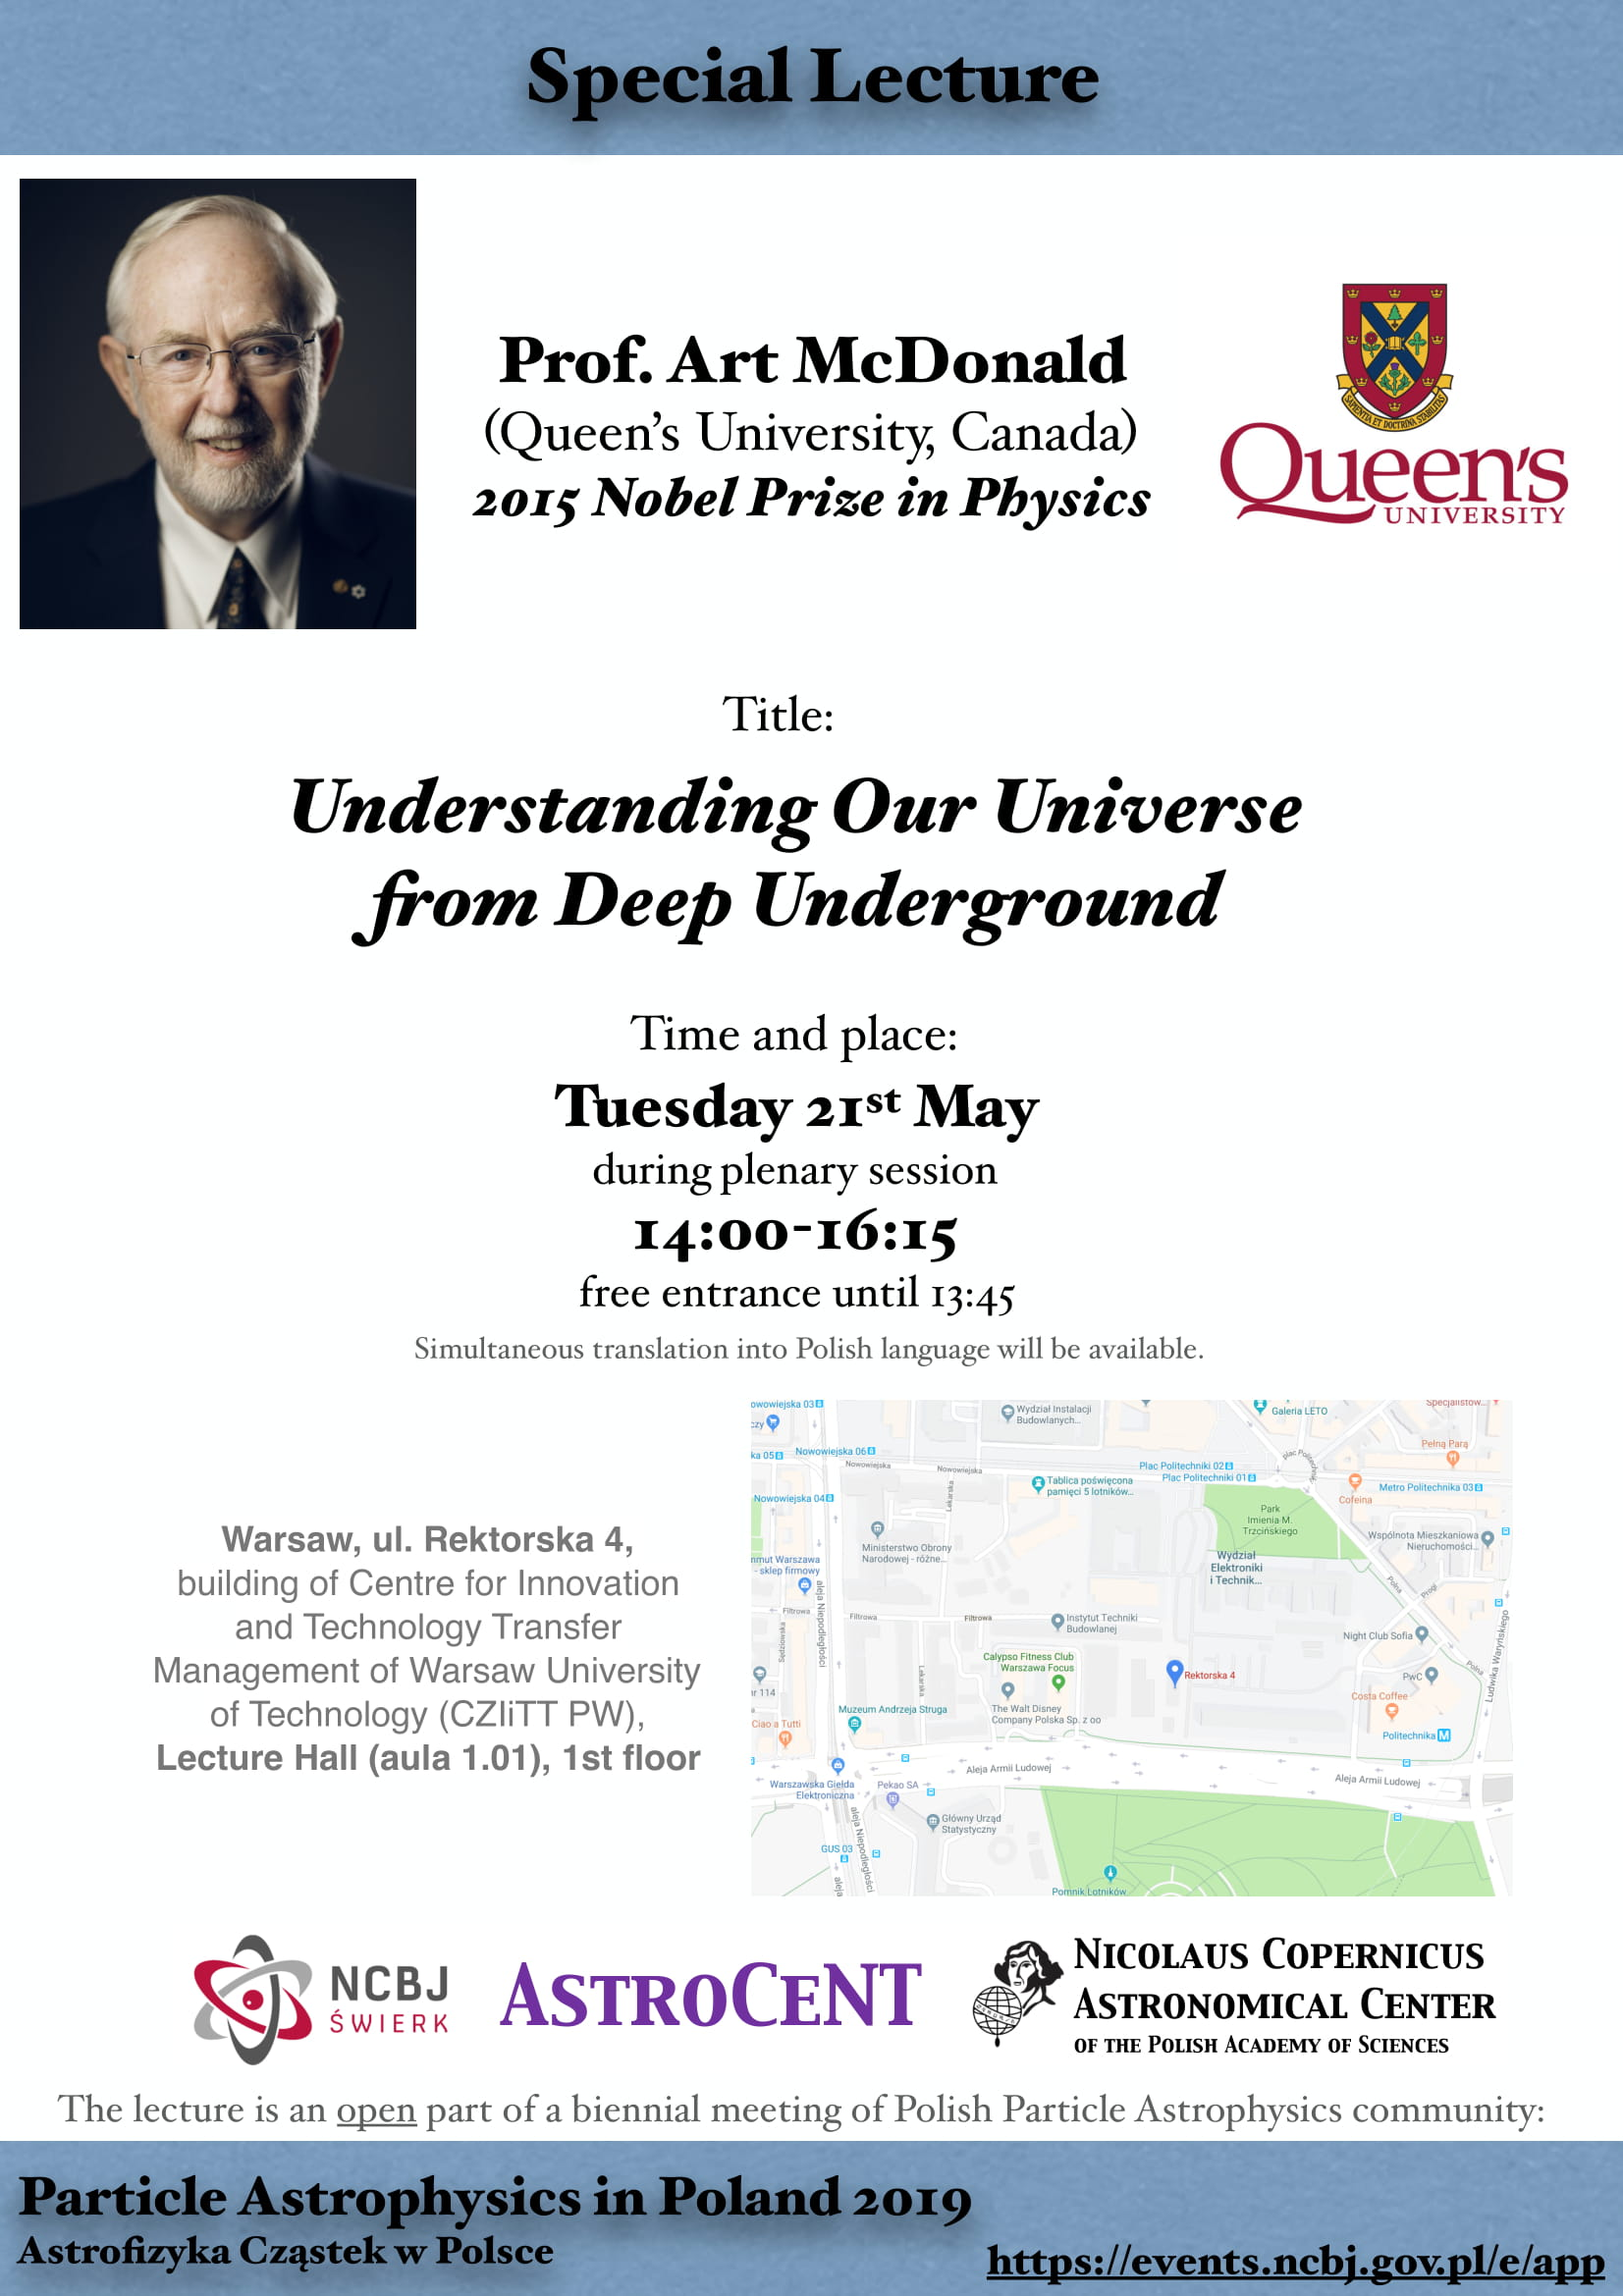 Special Lecture - Prof. Art McDonald - Understanding Our Universe from Deep Underground